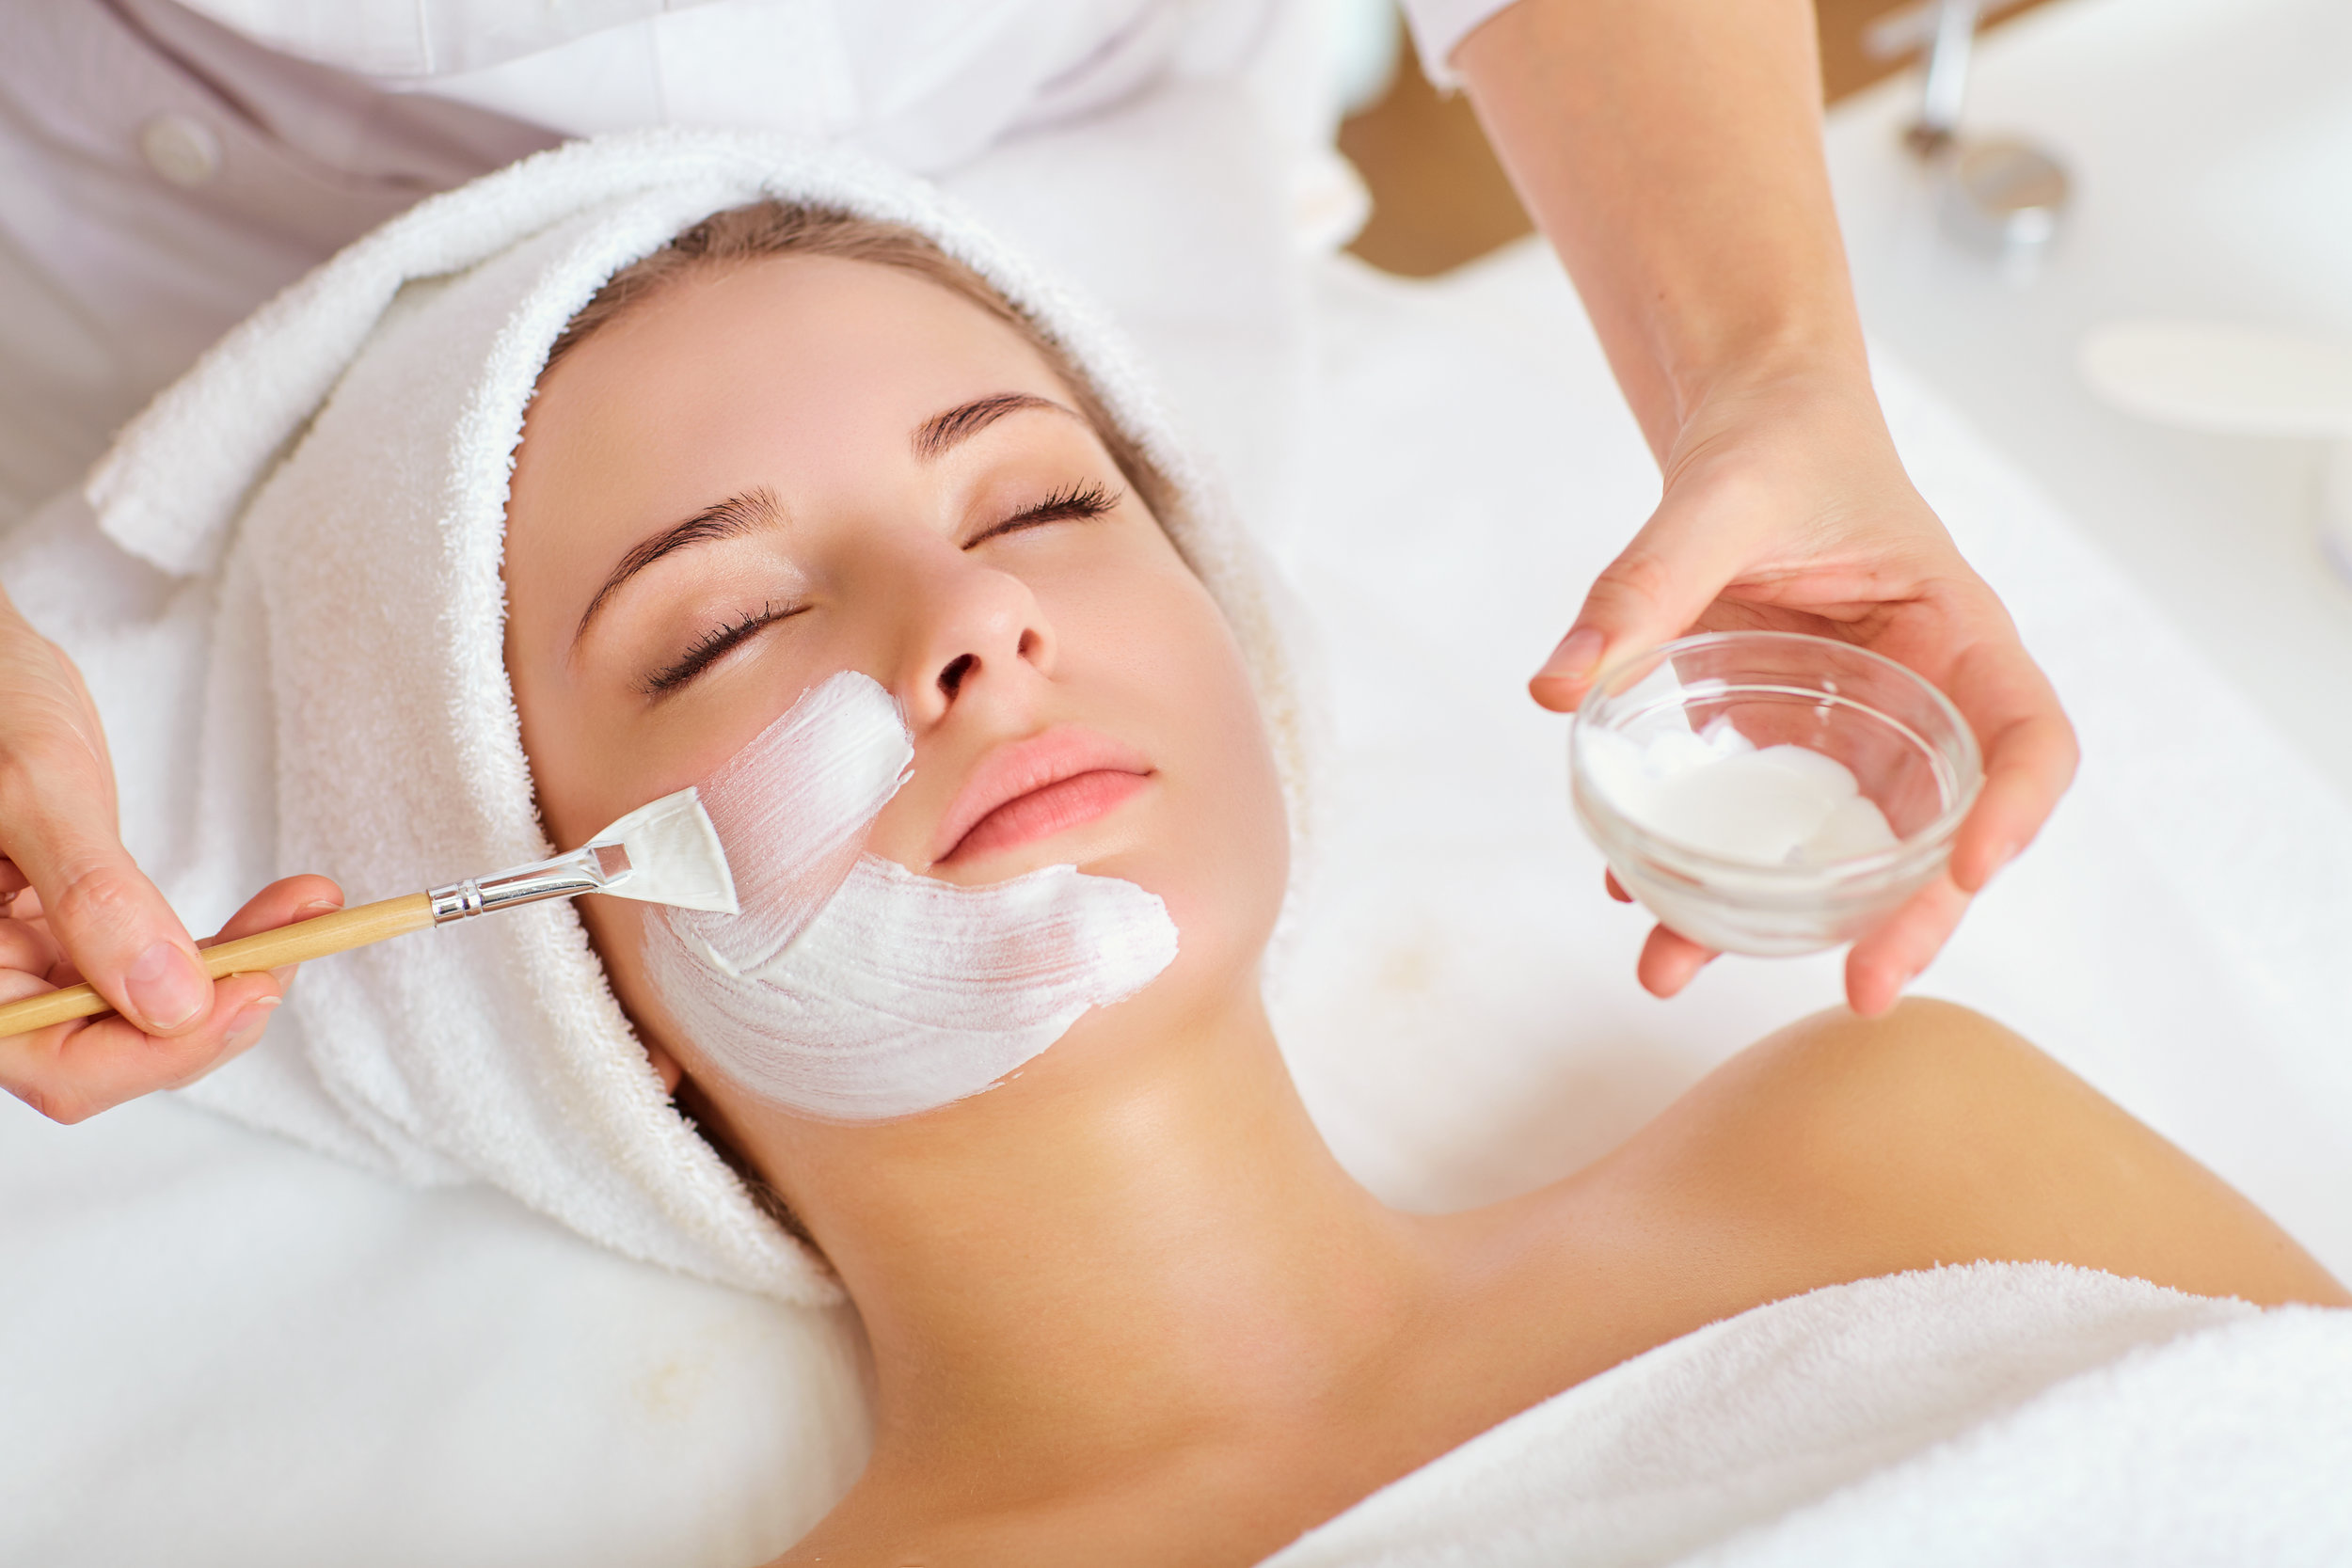 Age Correction Treatment Facials - Vitamin C Sea spa treatment (1.5 Hours)........$125.00Collagen 90 Treatment (2 Hours).....................$145.00Botinol Treatment (1.5 Hours).............................$145.00Hydradermie Lift Treatment (1.5 Hours)..........$150.00Collagen Eye and Lip Treatment (45 Min)......$45.00Microdermabrasion with facial (2 hours)………$155.00